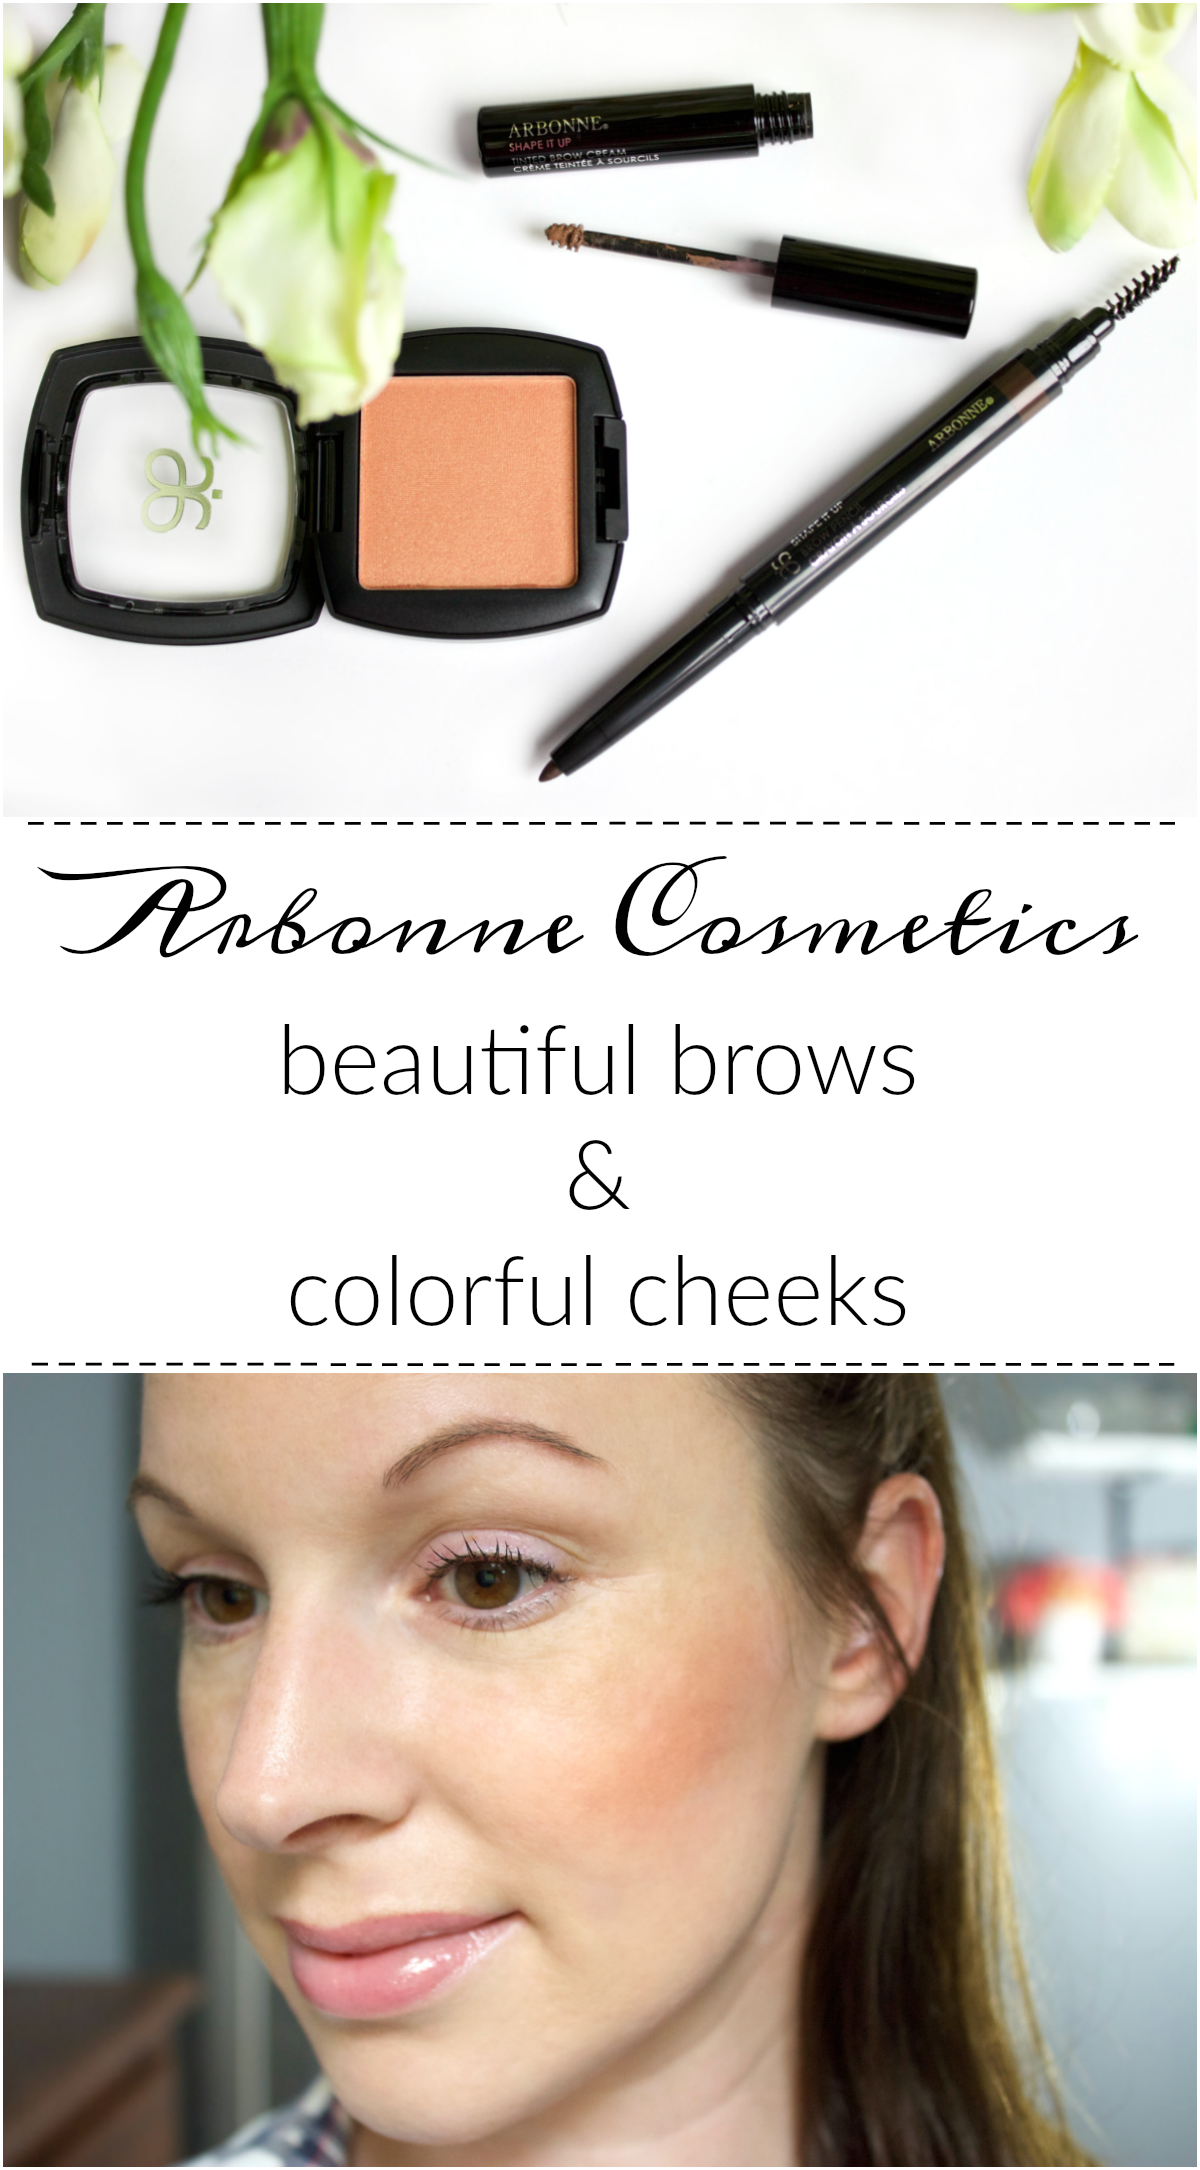 Arbonne Cosmetics Beautiful Brows & Colorful Cheeks